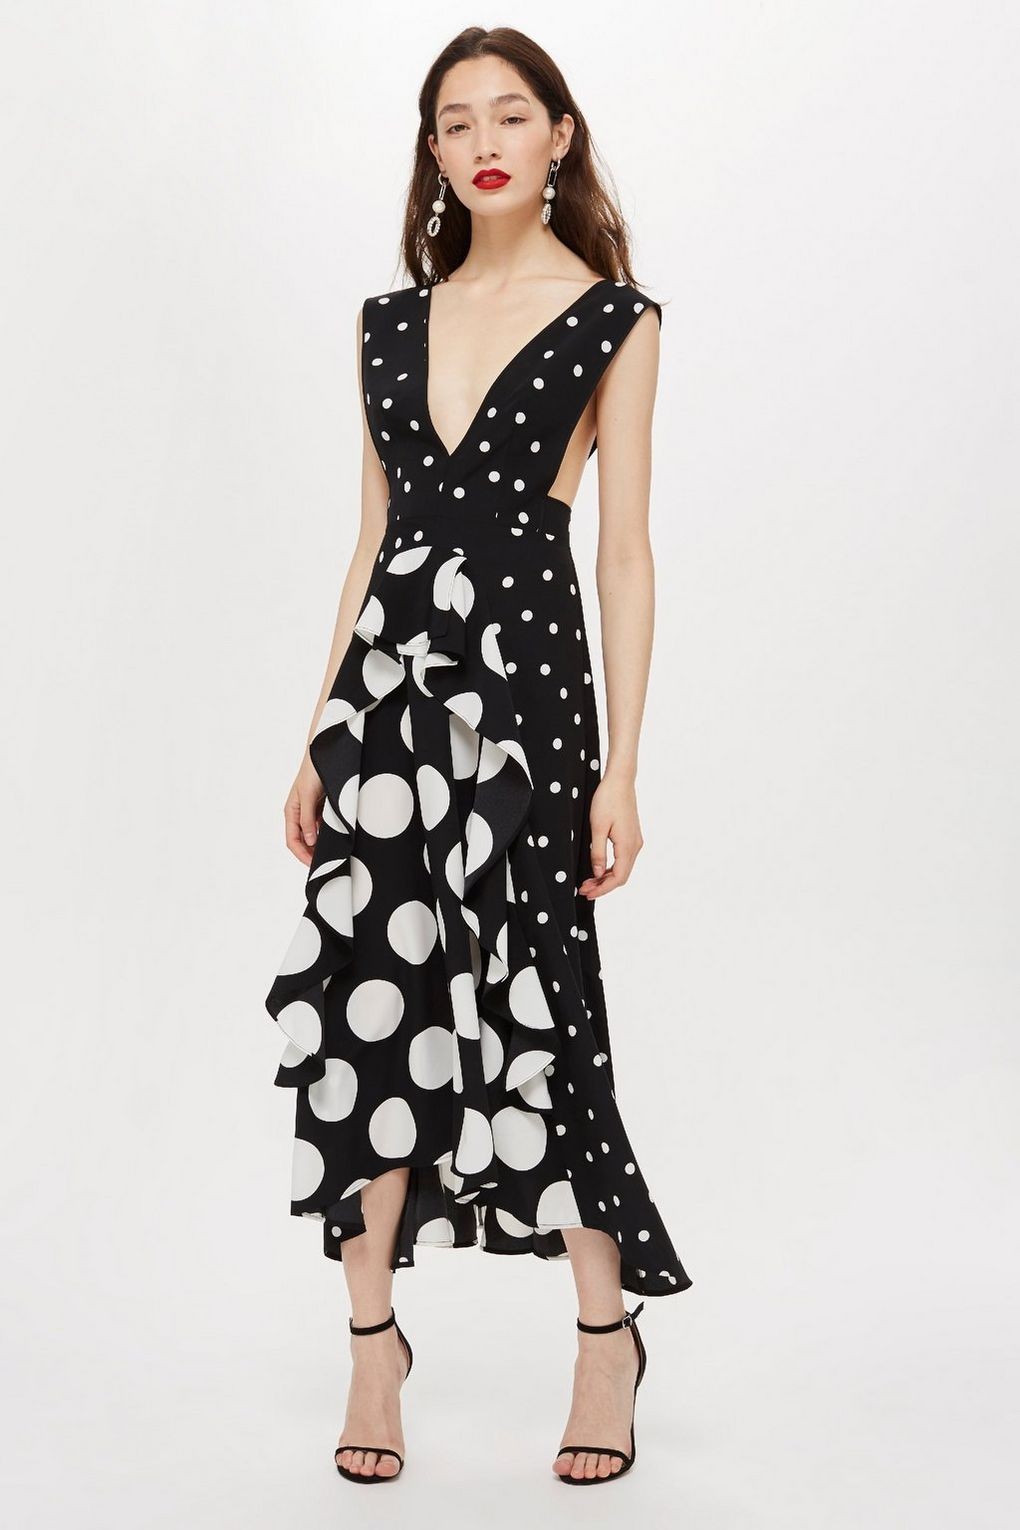 Summer Outfits for Weddings